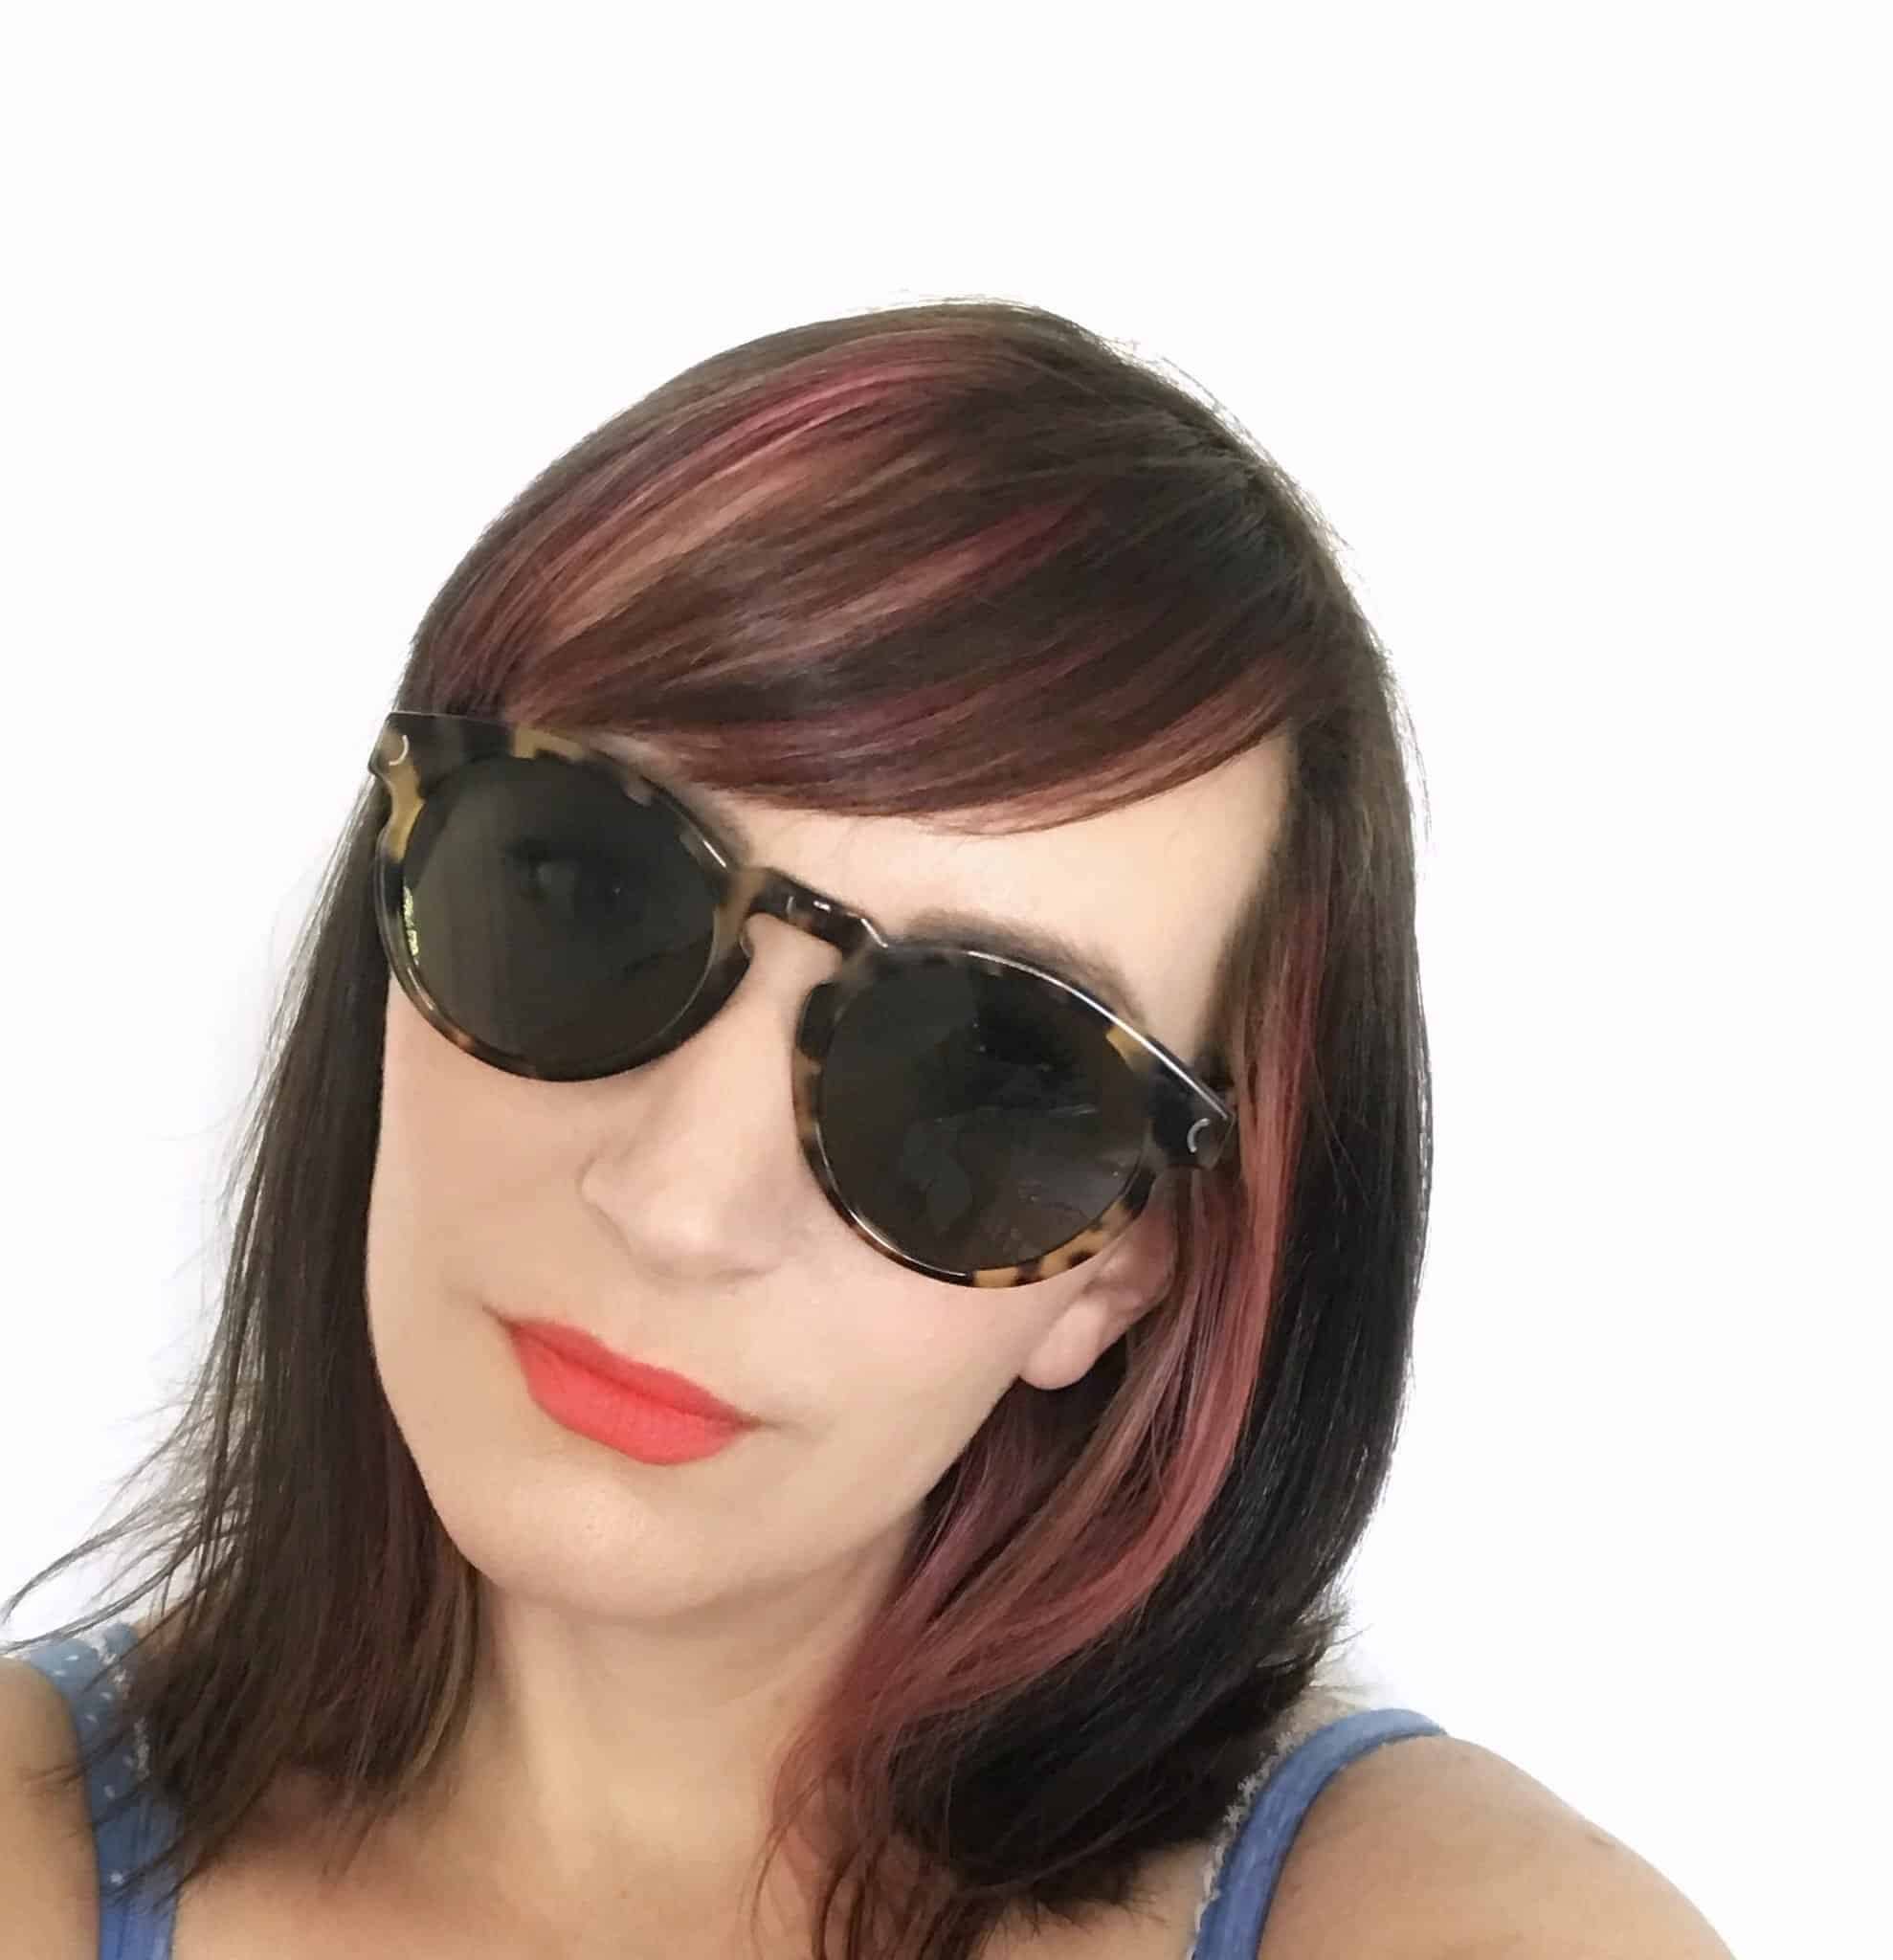 Becky Pink wearing Golden Hour sunglasses